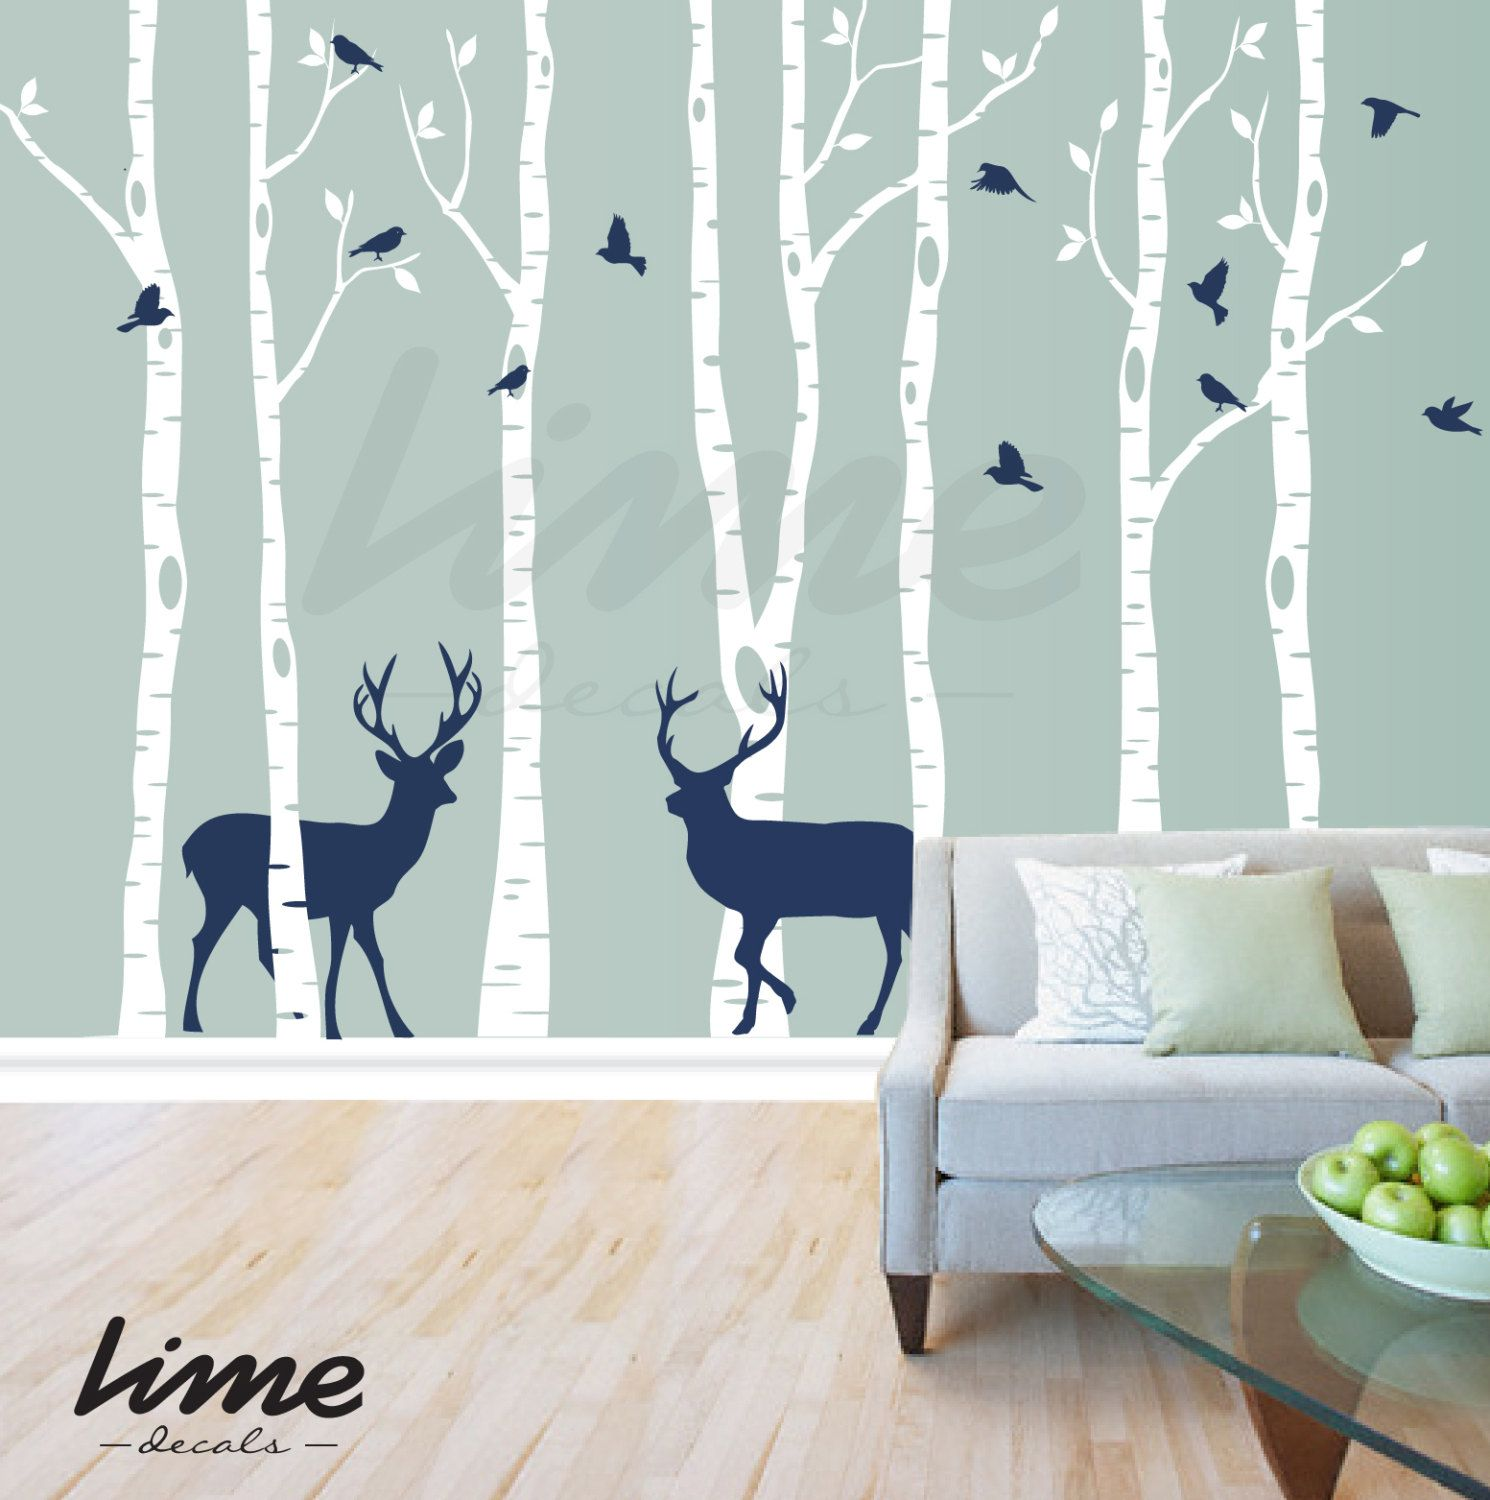 Birch tree deer wall decal forest birch trees birch by limedecals birch tree deer wall decal forest birch trees birch by limedecals 9900 amipublicfo Choice Image